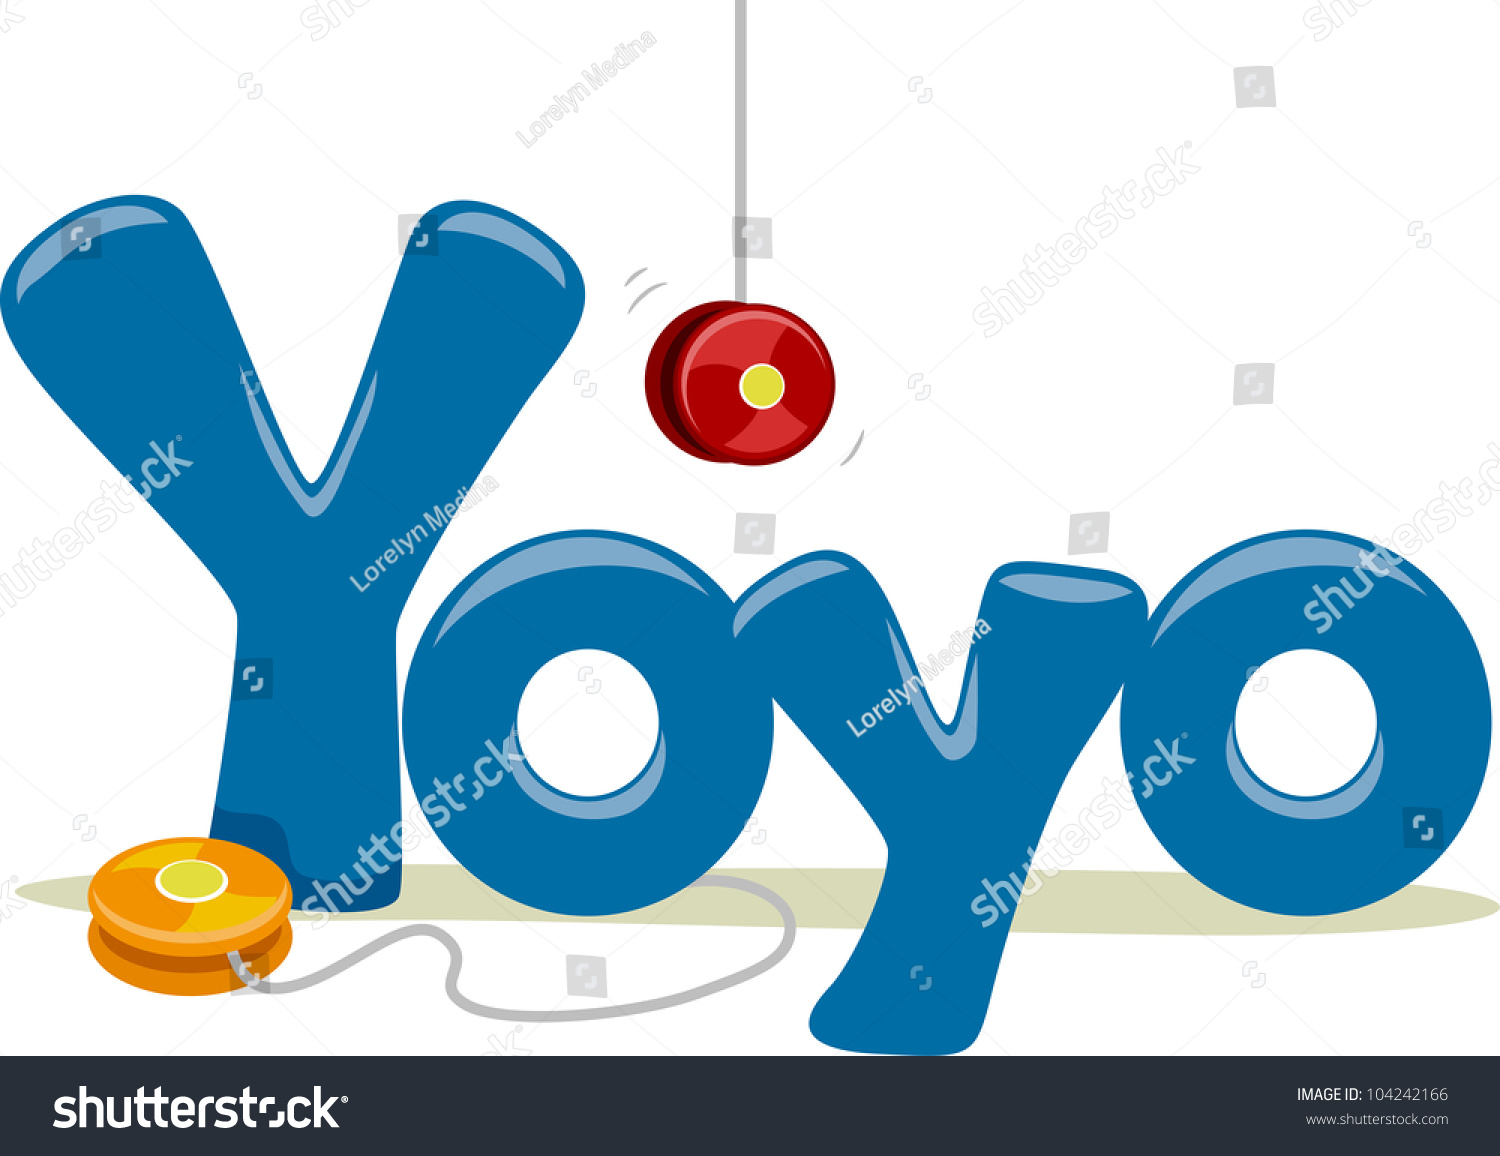 Text Illustration Featuring Word Yoyo Stock Vector 104242166 ... for Clipart Yoyo  45jwn